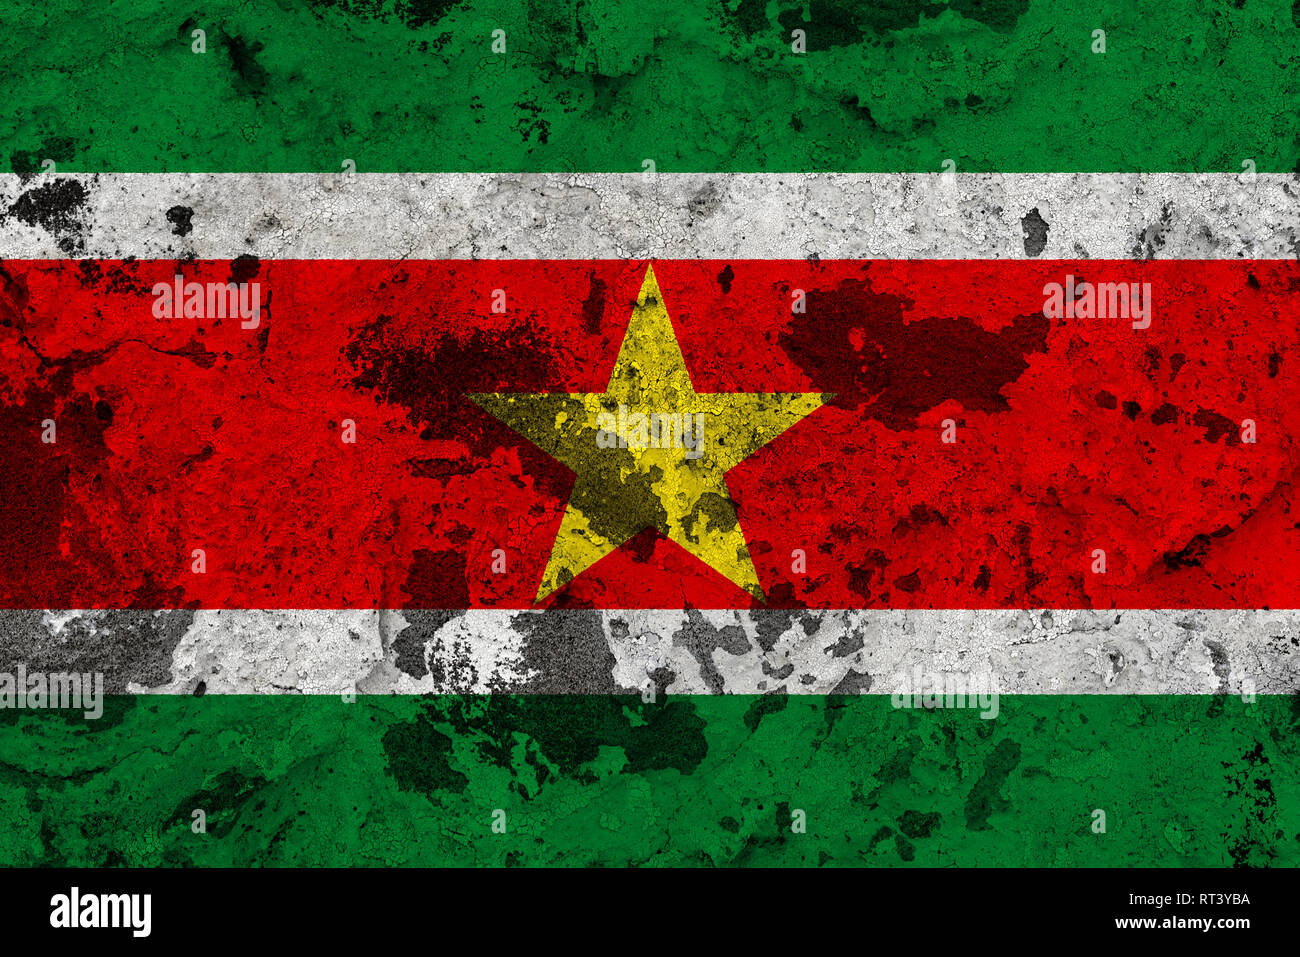 Suriname flag on old wall. Patriotic grunge background. National flag of Suriname - Stock Image